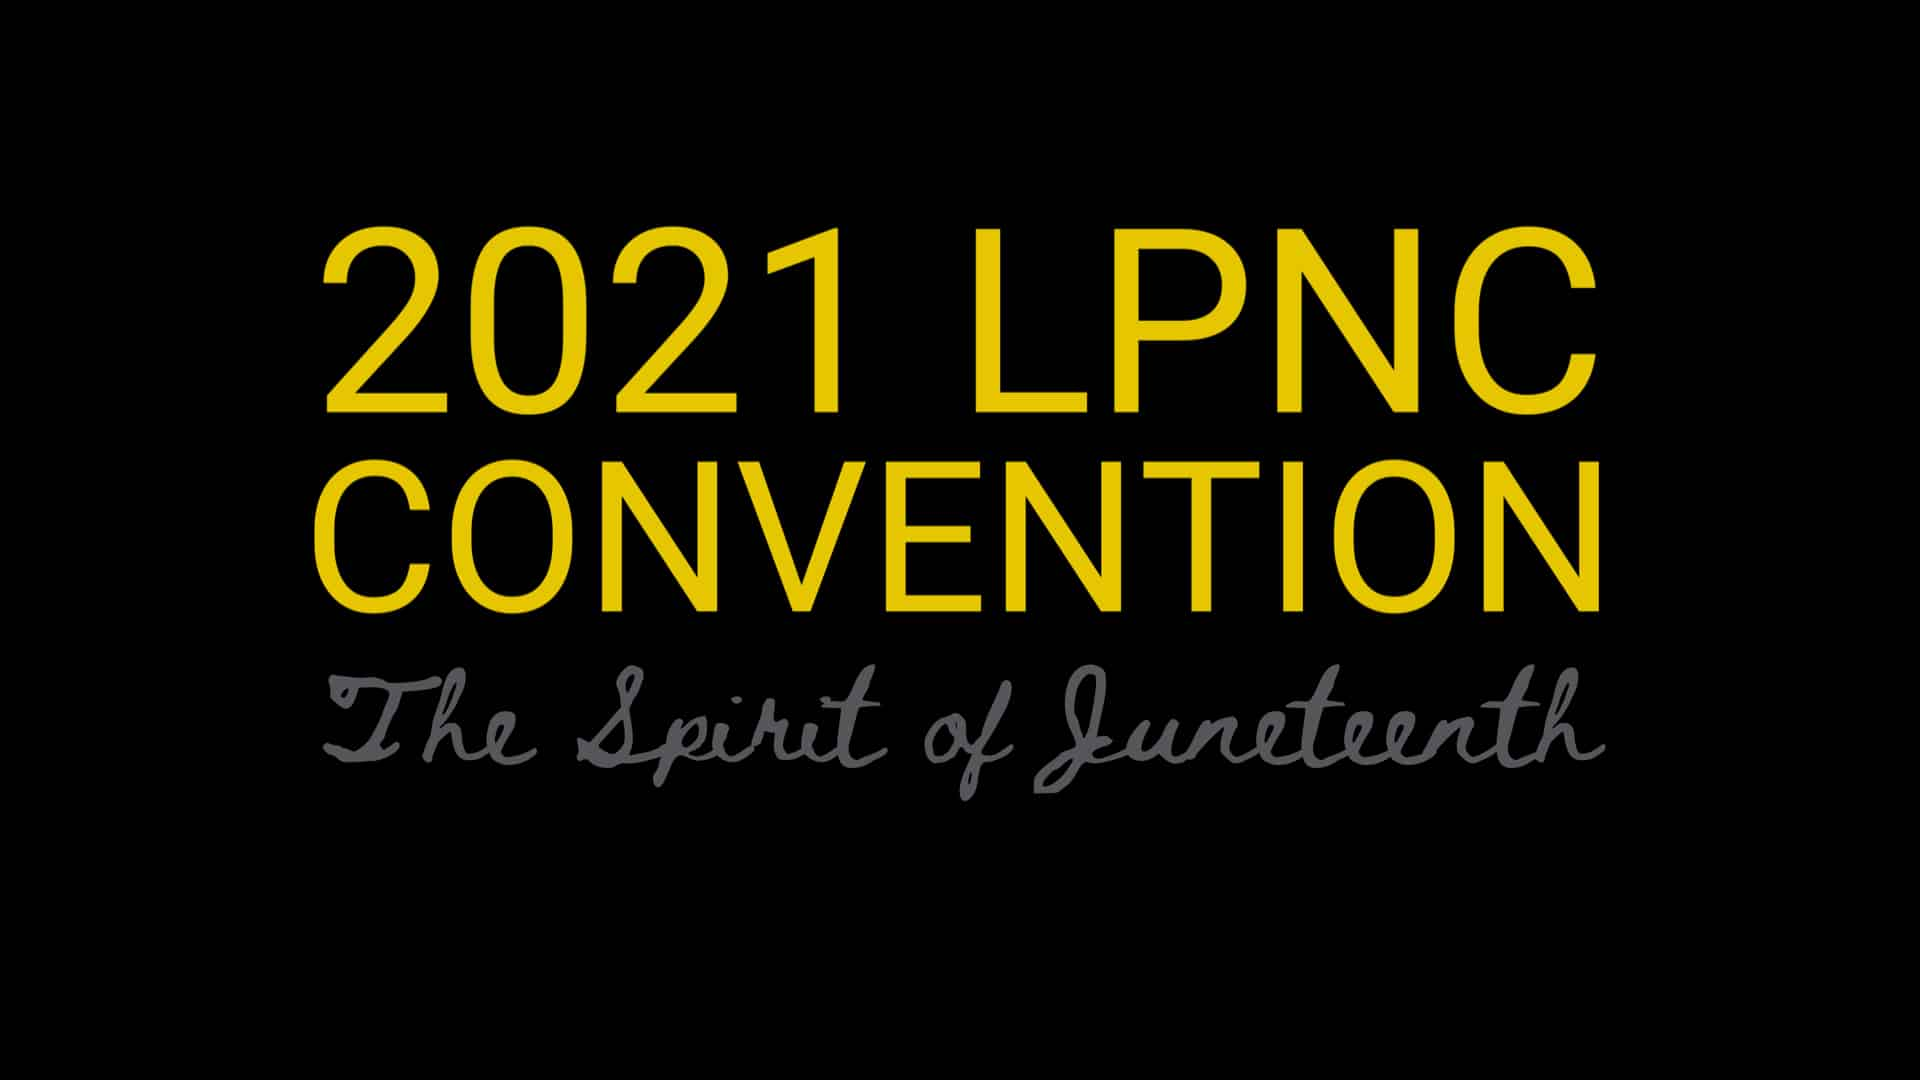 2021 convention logo libertarian party north carolina